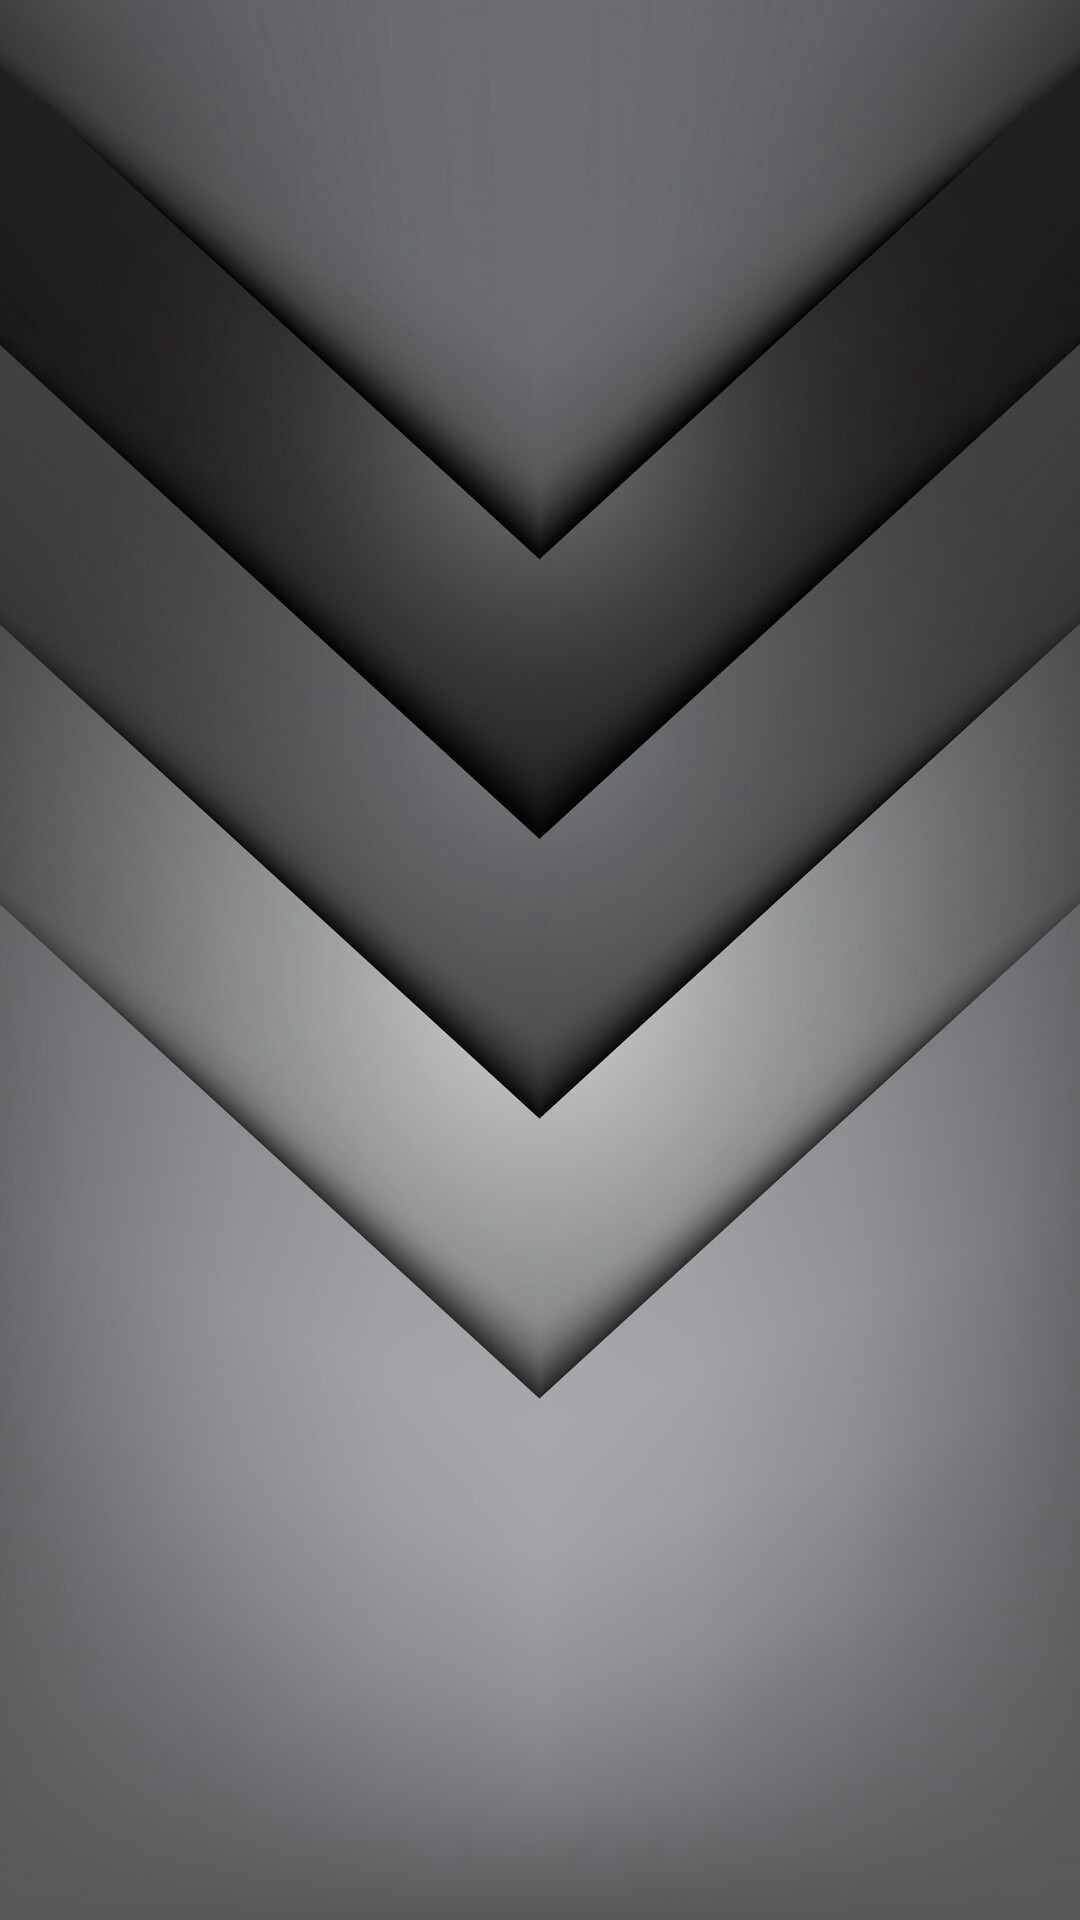 1080x1920 Gradient Grey Chevron Wallpaper